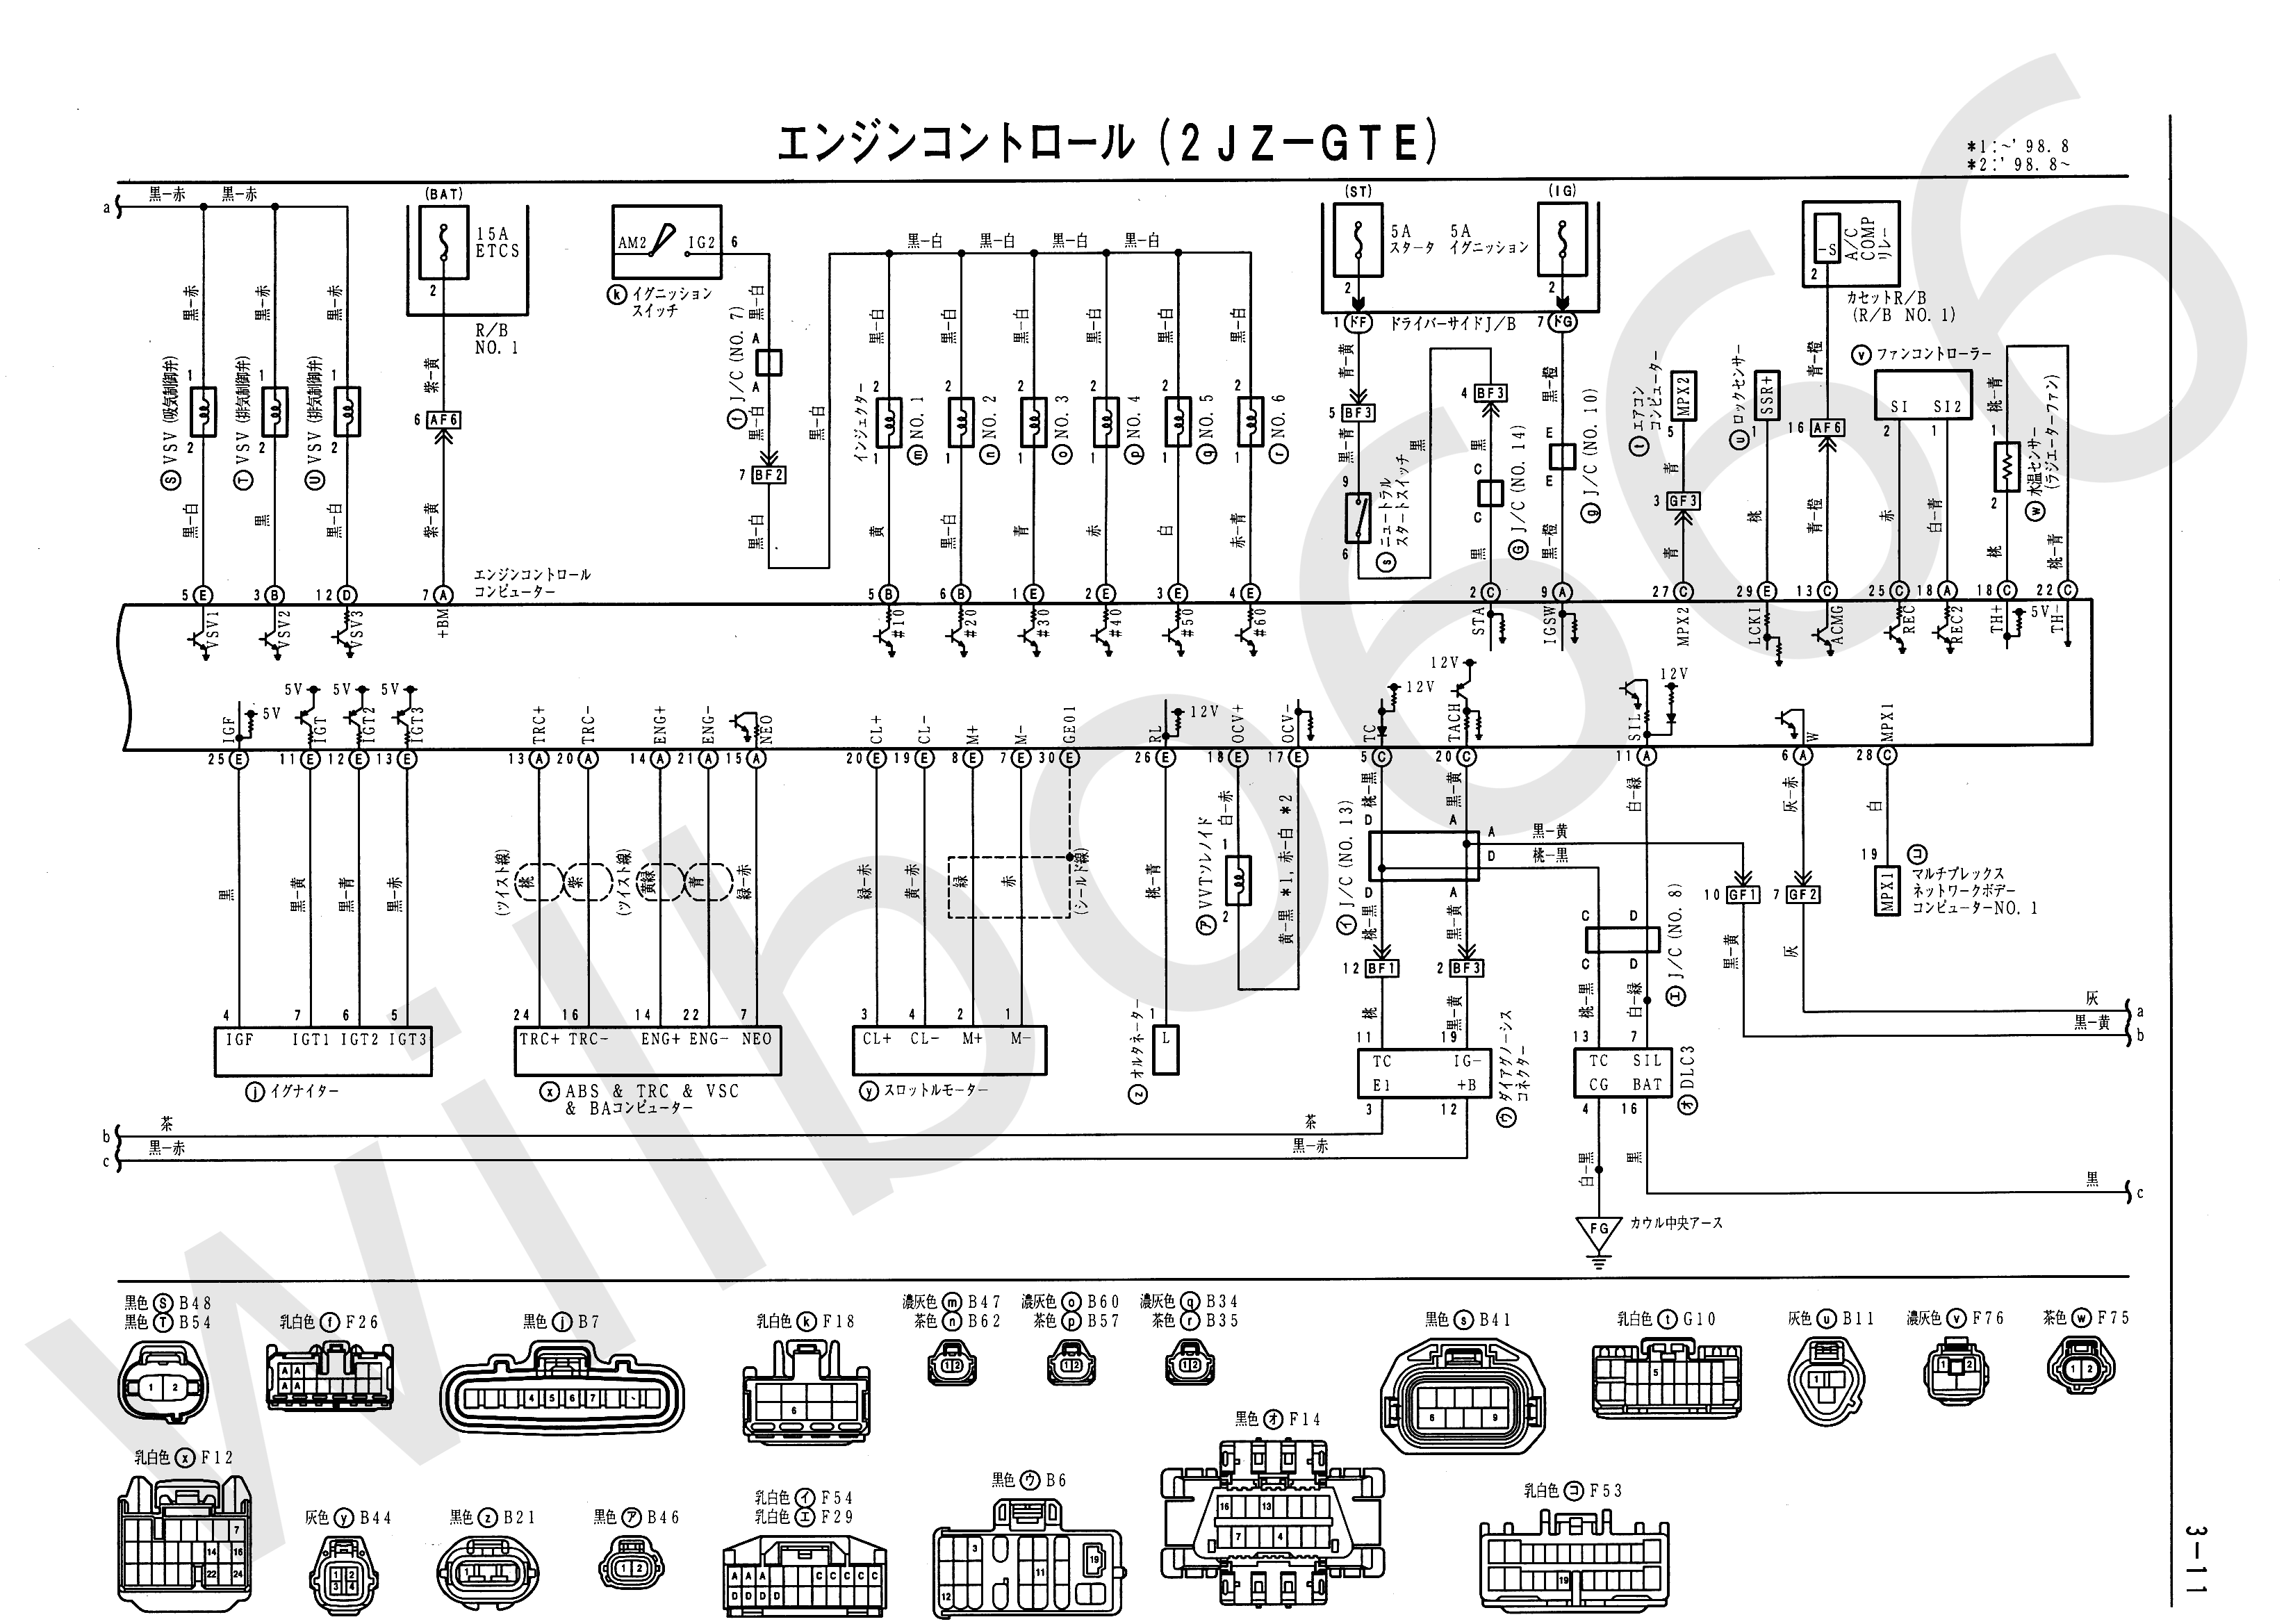 JZS161 Electrical Wiring Diagram 6748505 3 11 wilbo666 2jz gte vvti jzs161 aristo engine wiring toyota highlander ecu wiring diagram at eliteediting.co